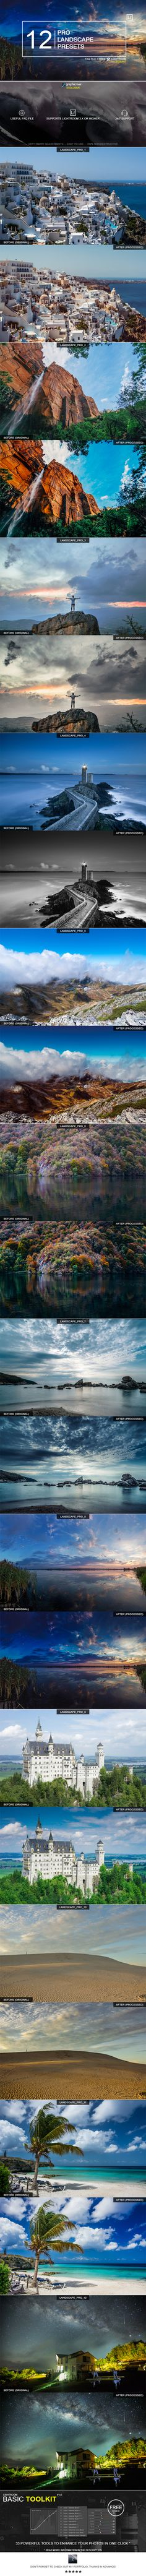 12 Pro Landscape Presets by zvolia About 12 Pro Landscape Presets: This professional presets which are designed to be used with landscape photos. They have been test